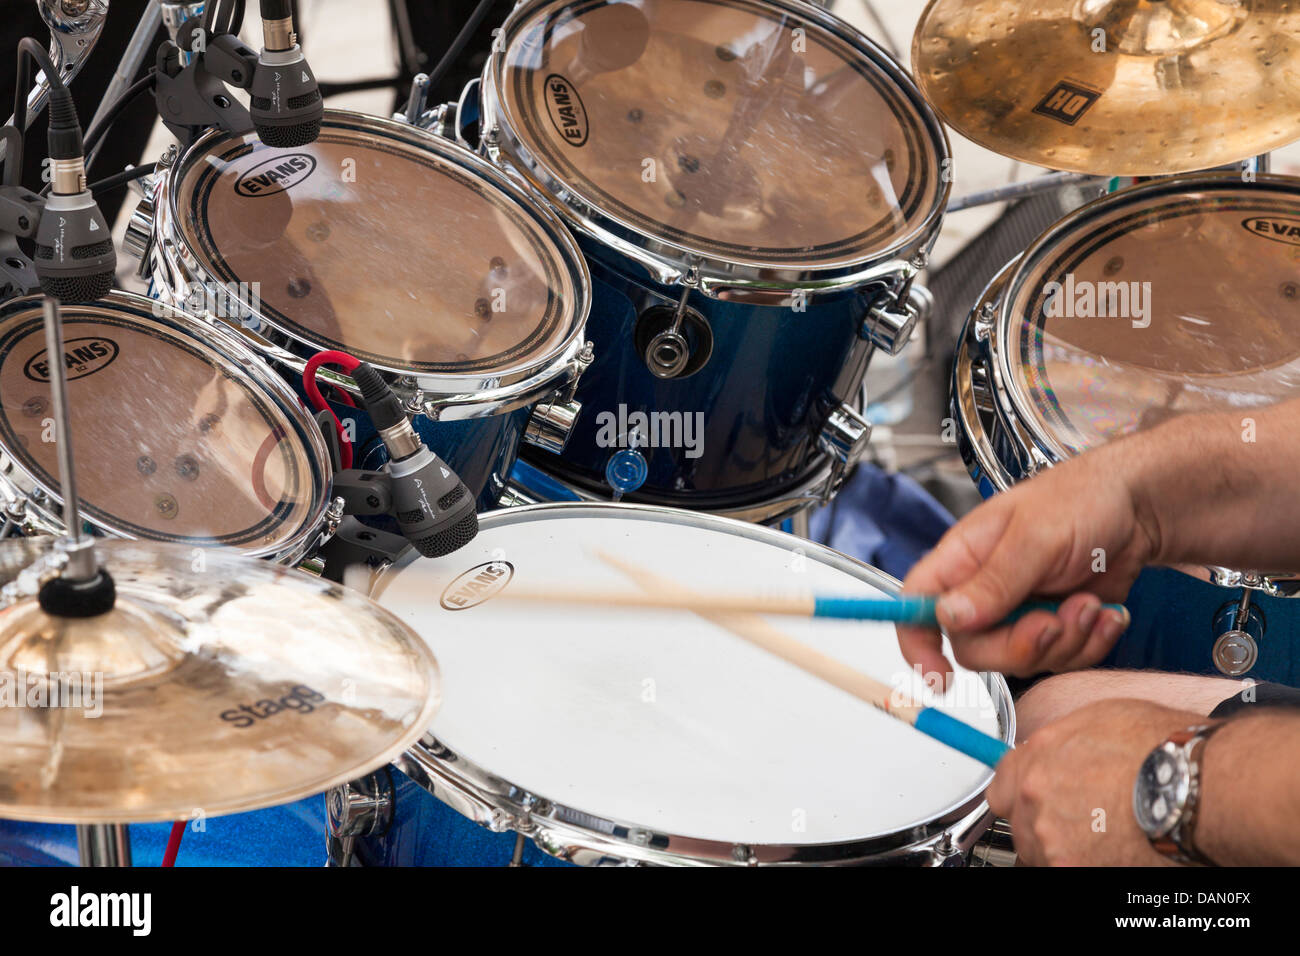 close up of drummer hands and drum kit - Stock Image